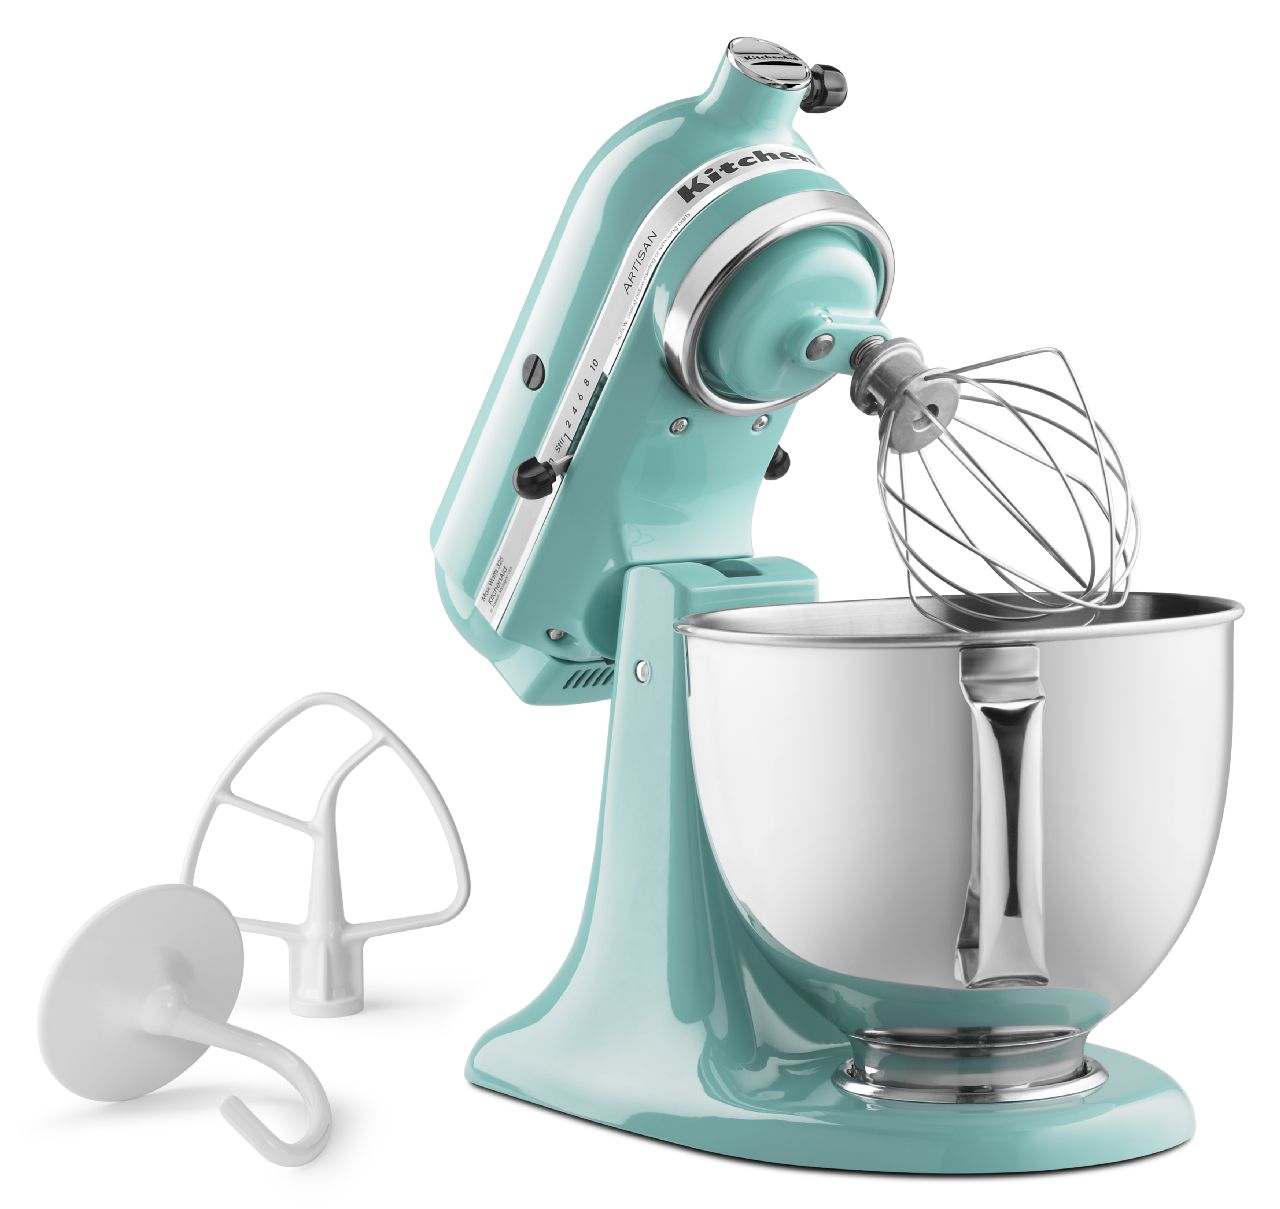 KitchenAid-Refurbished-Artisan-Series-5-Quart-Tilt-Head-Stand-Mixer-RRK150 thumbnail 13